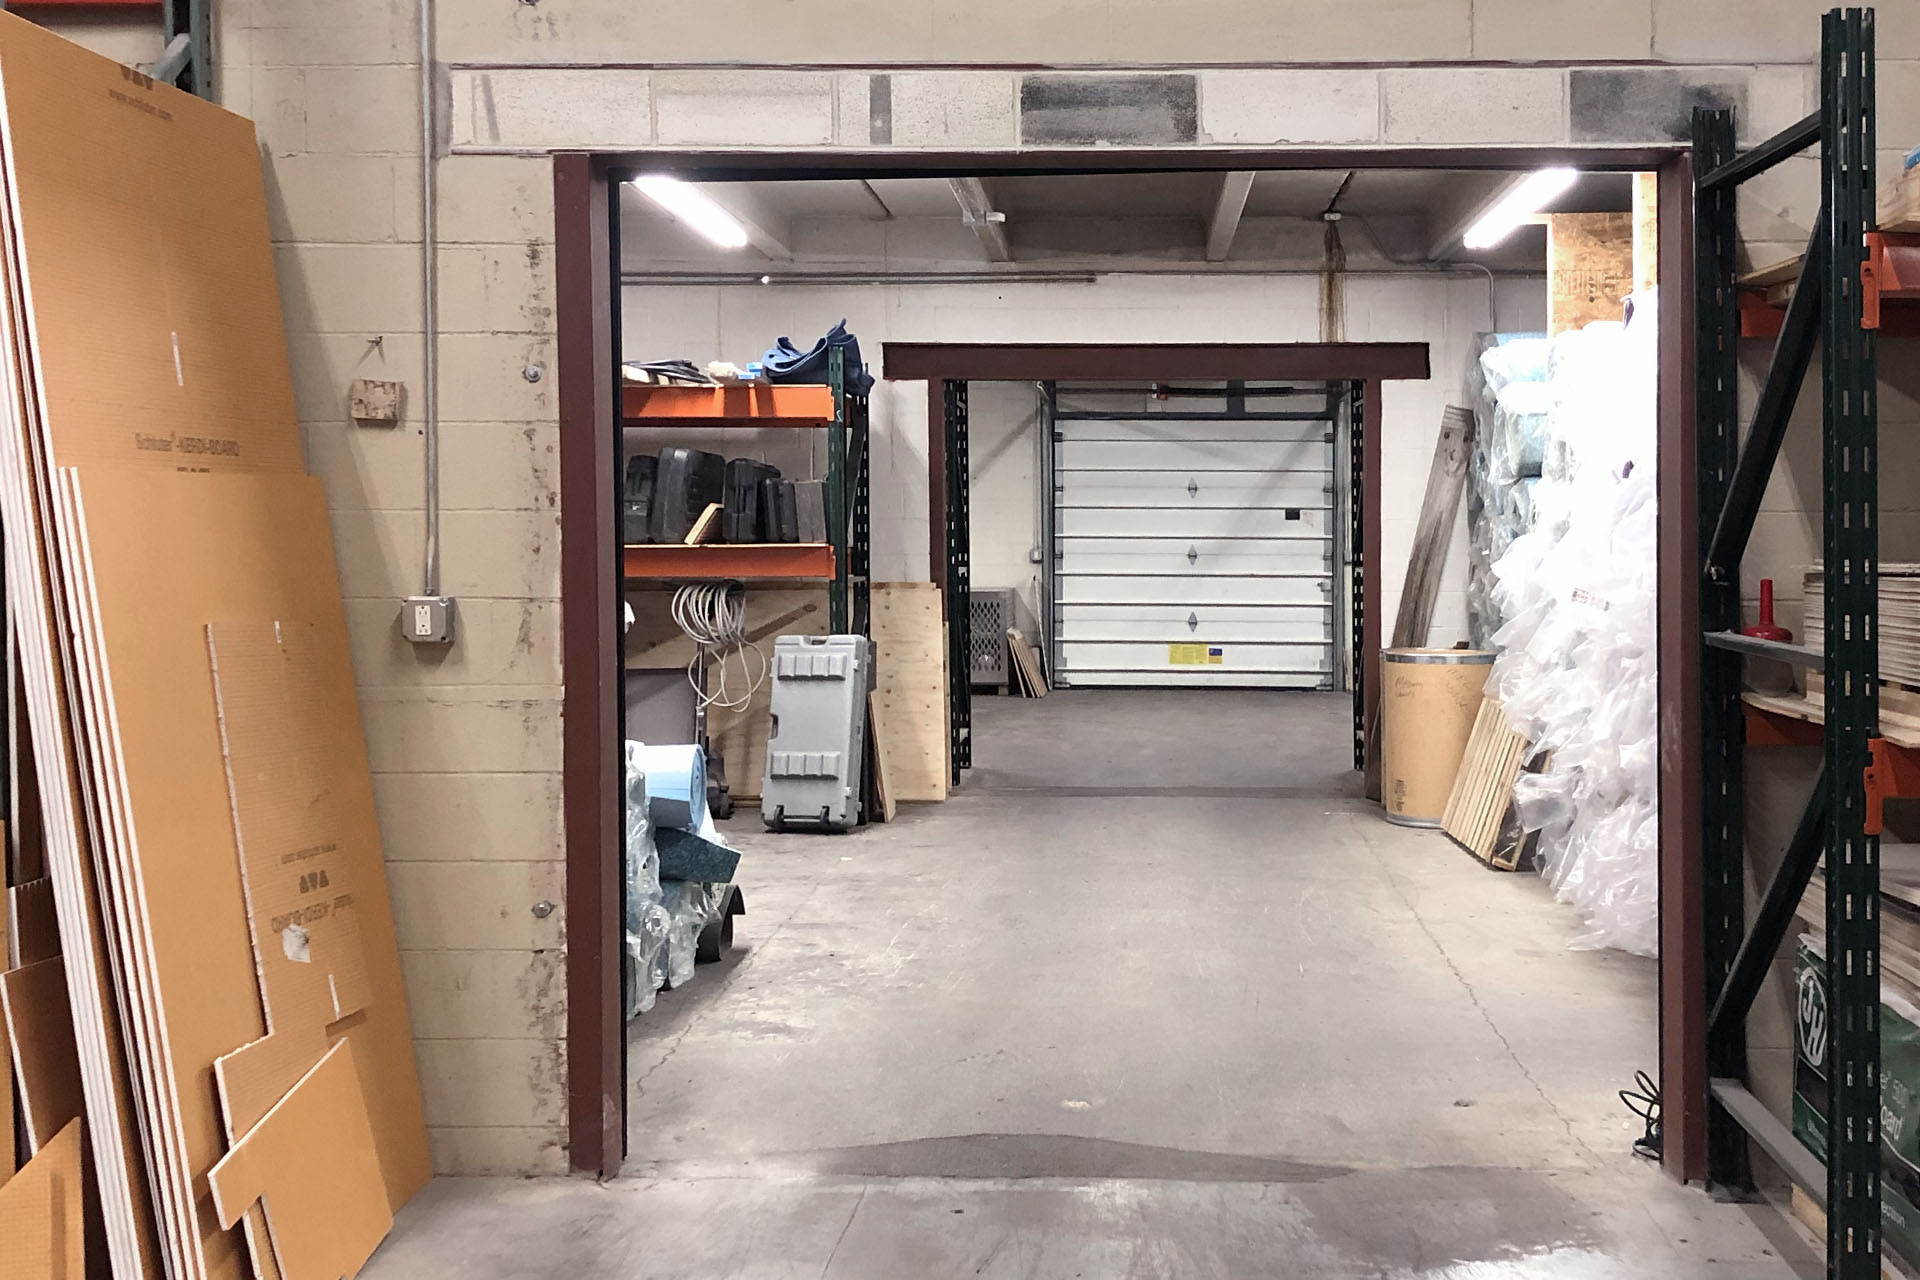 6733-2-after-warehouse-March-2019-dandsflooring.jpg